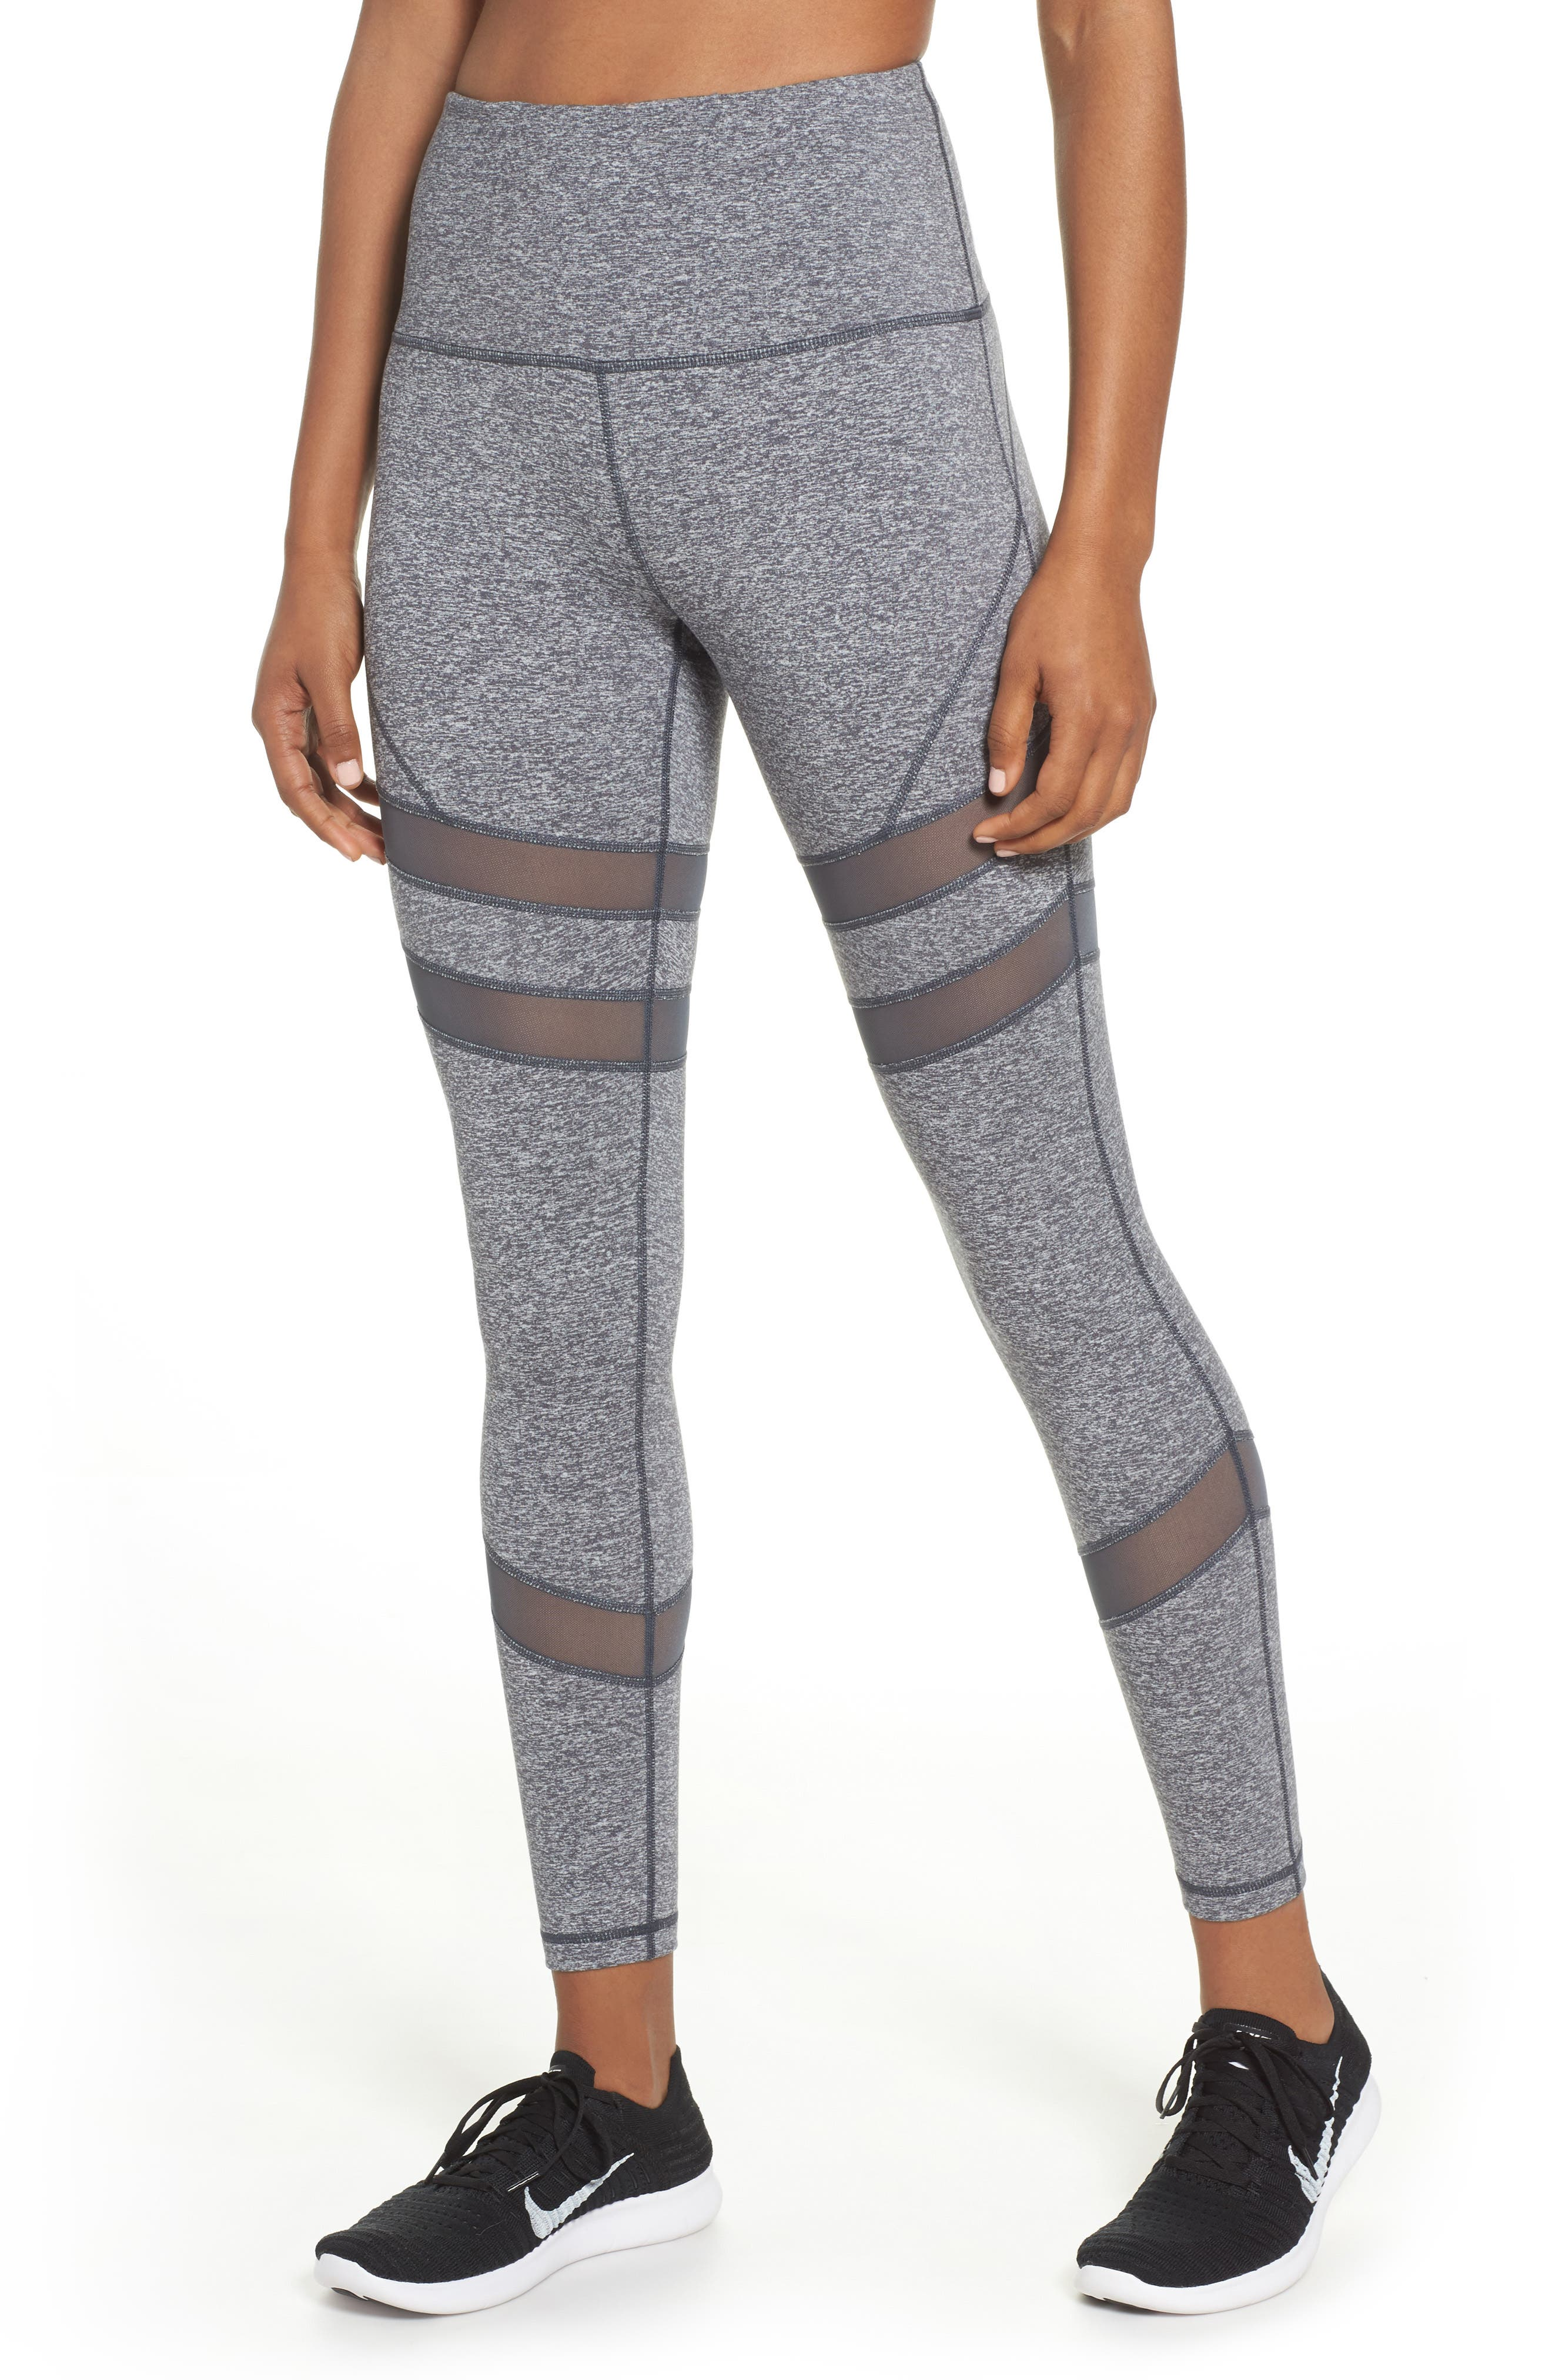 Alternate Image 1 Selected - Zella Good Sport High Waist Midi Leggings